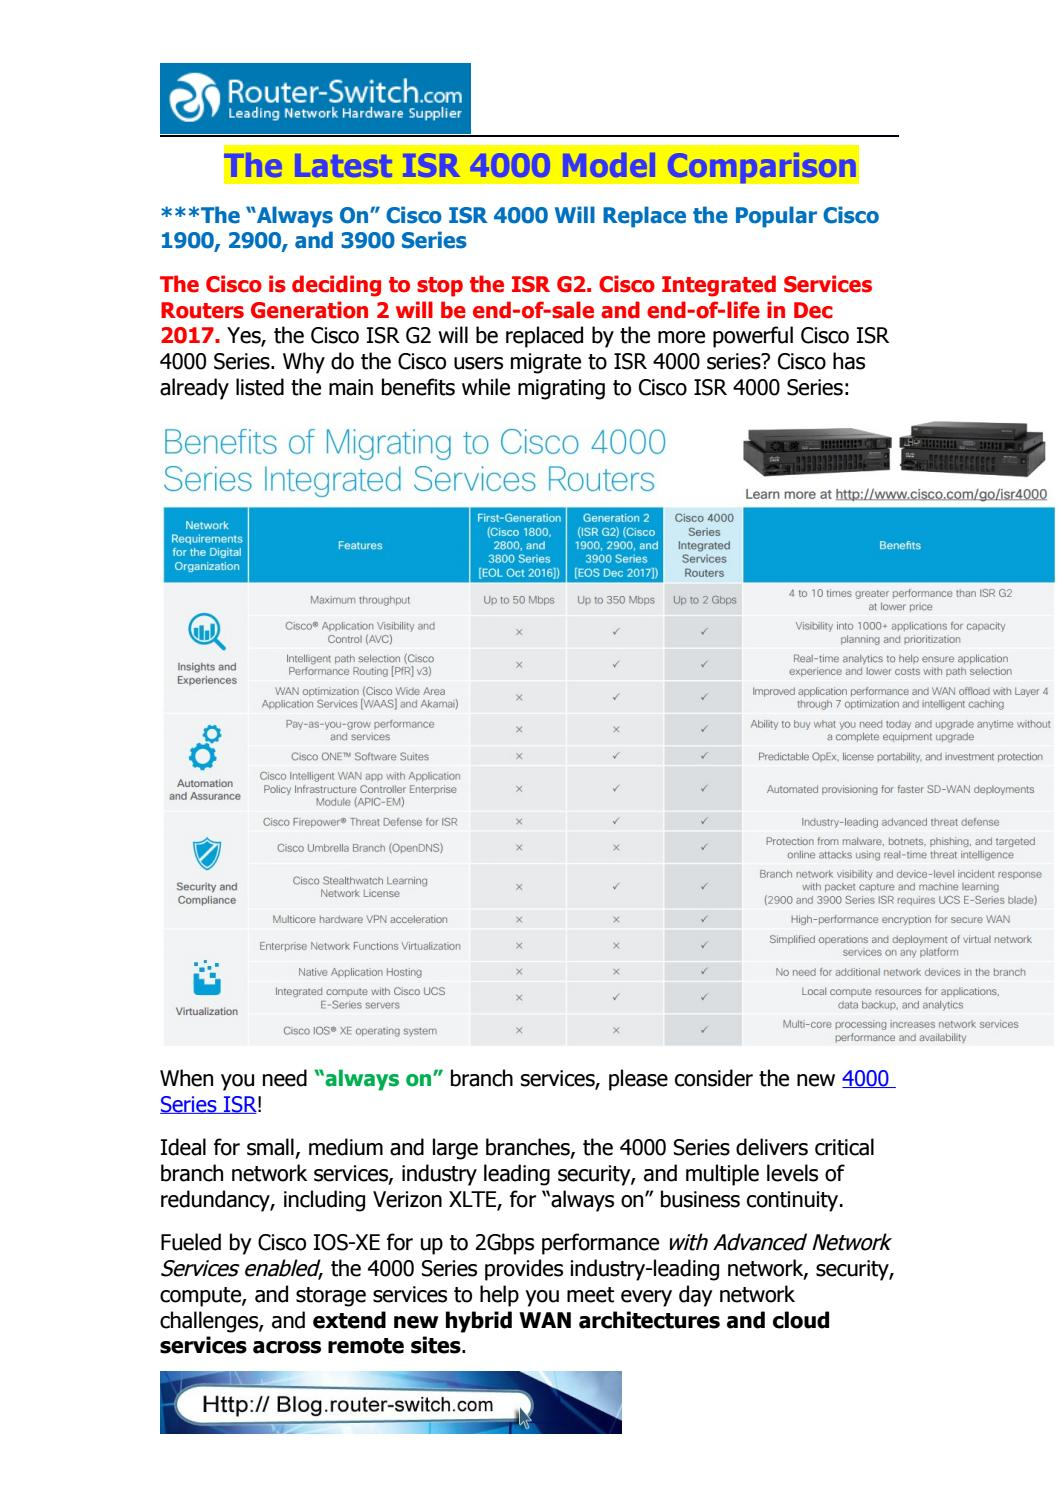 The latest isr 4000 model comparison by Router Switch - issuu